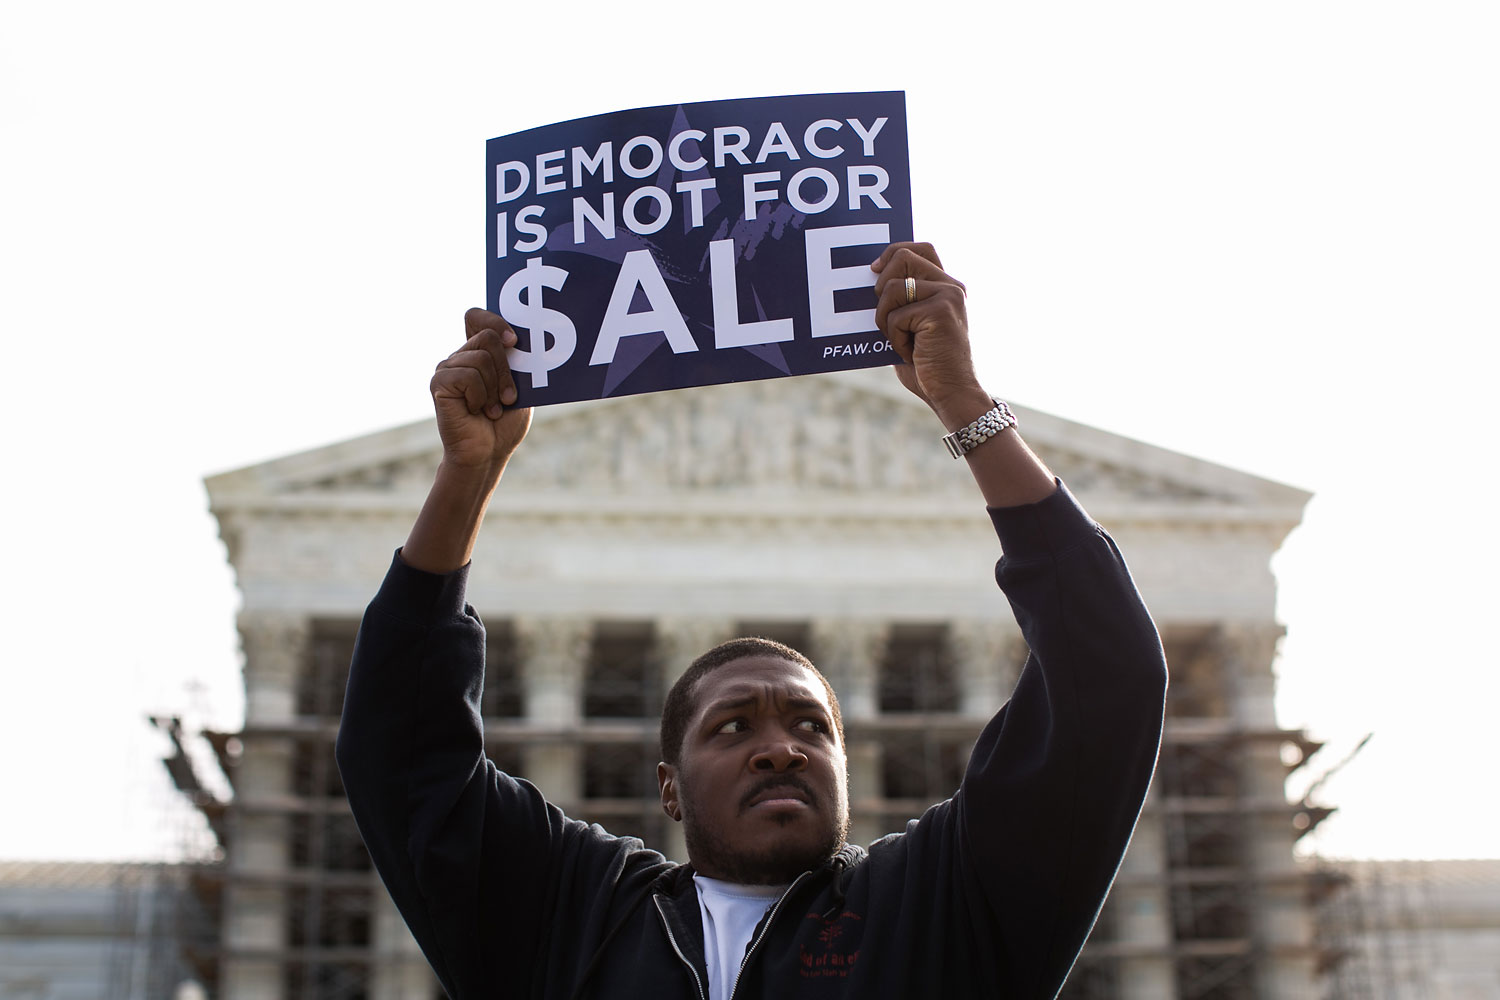 Cornell Woolridge holds a sign as he rallies against money in politics, at the Supreme Court in Washington, on October 8, 2013 in Washington, DC.